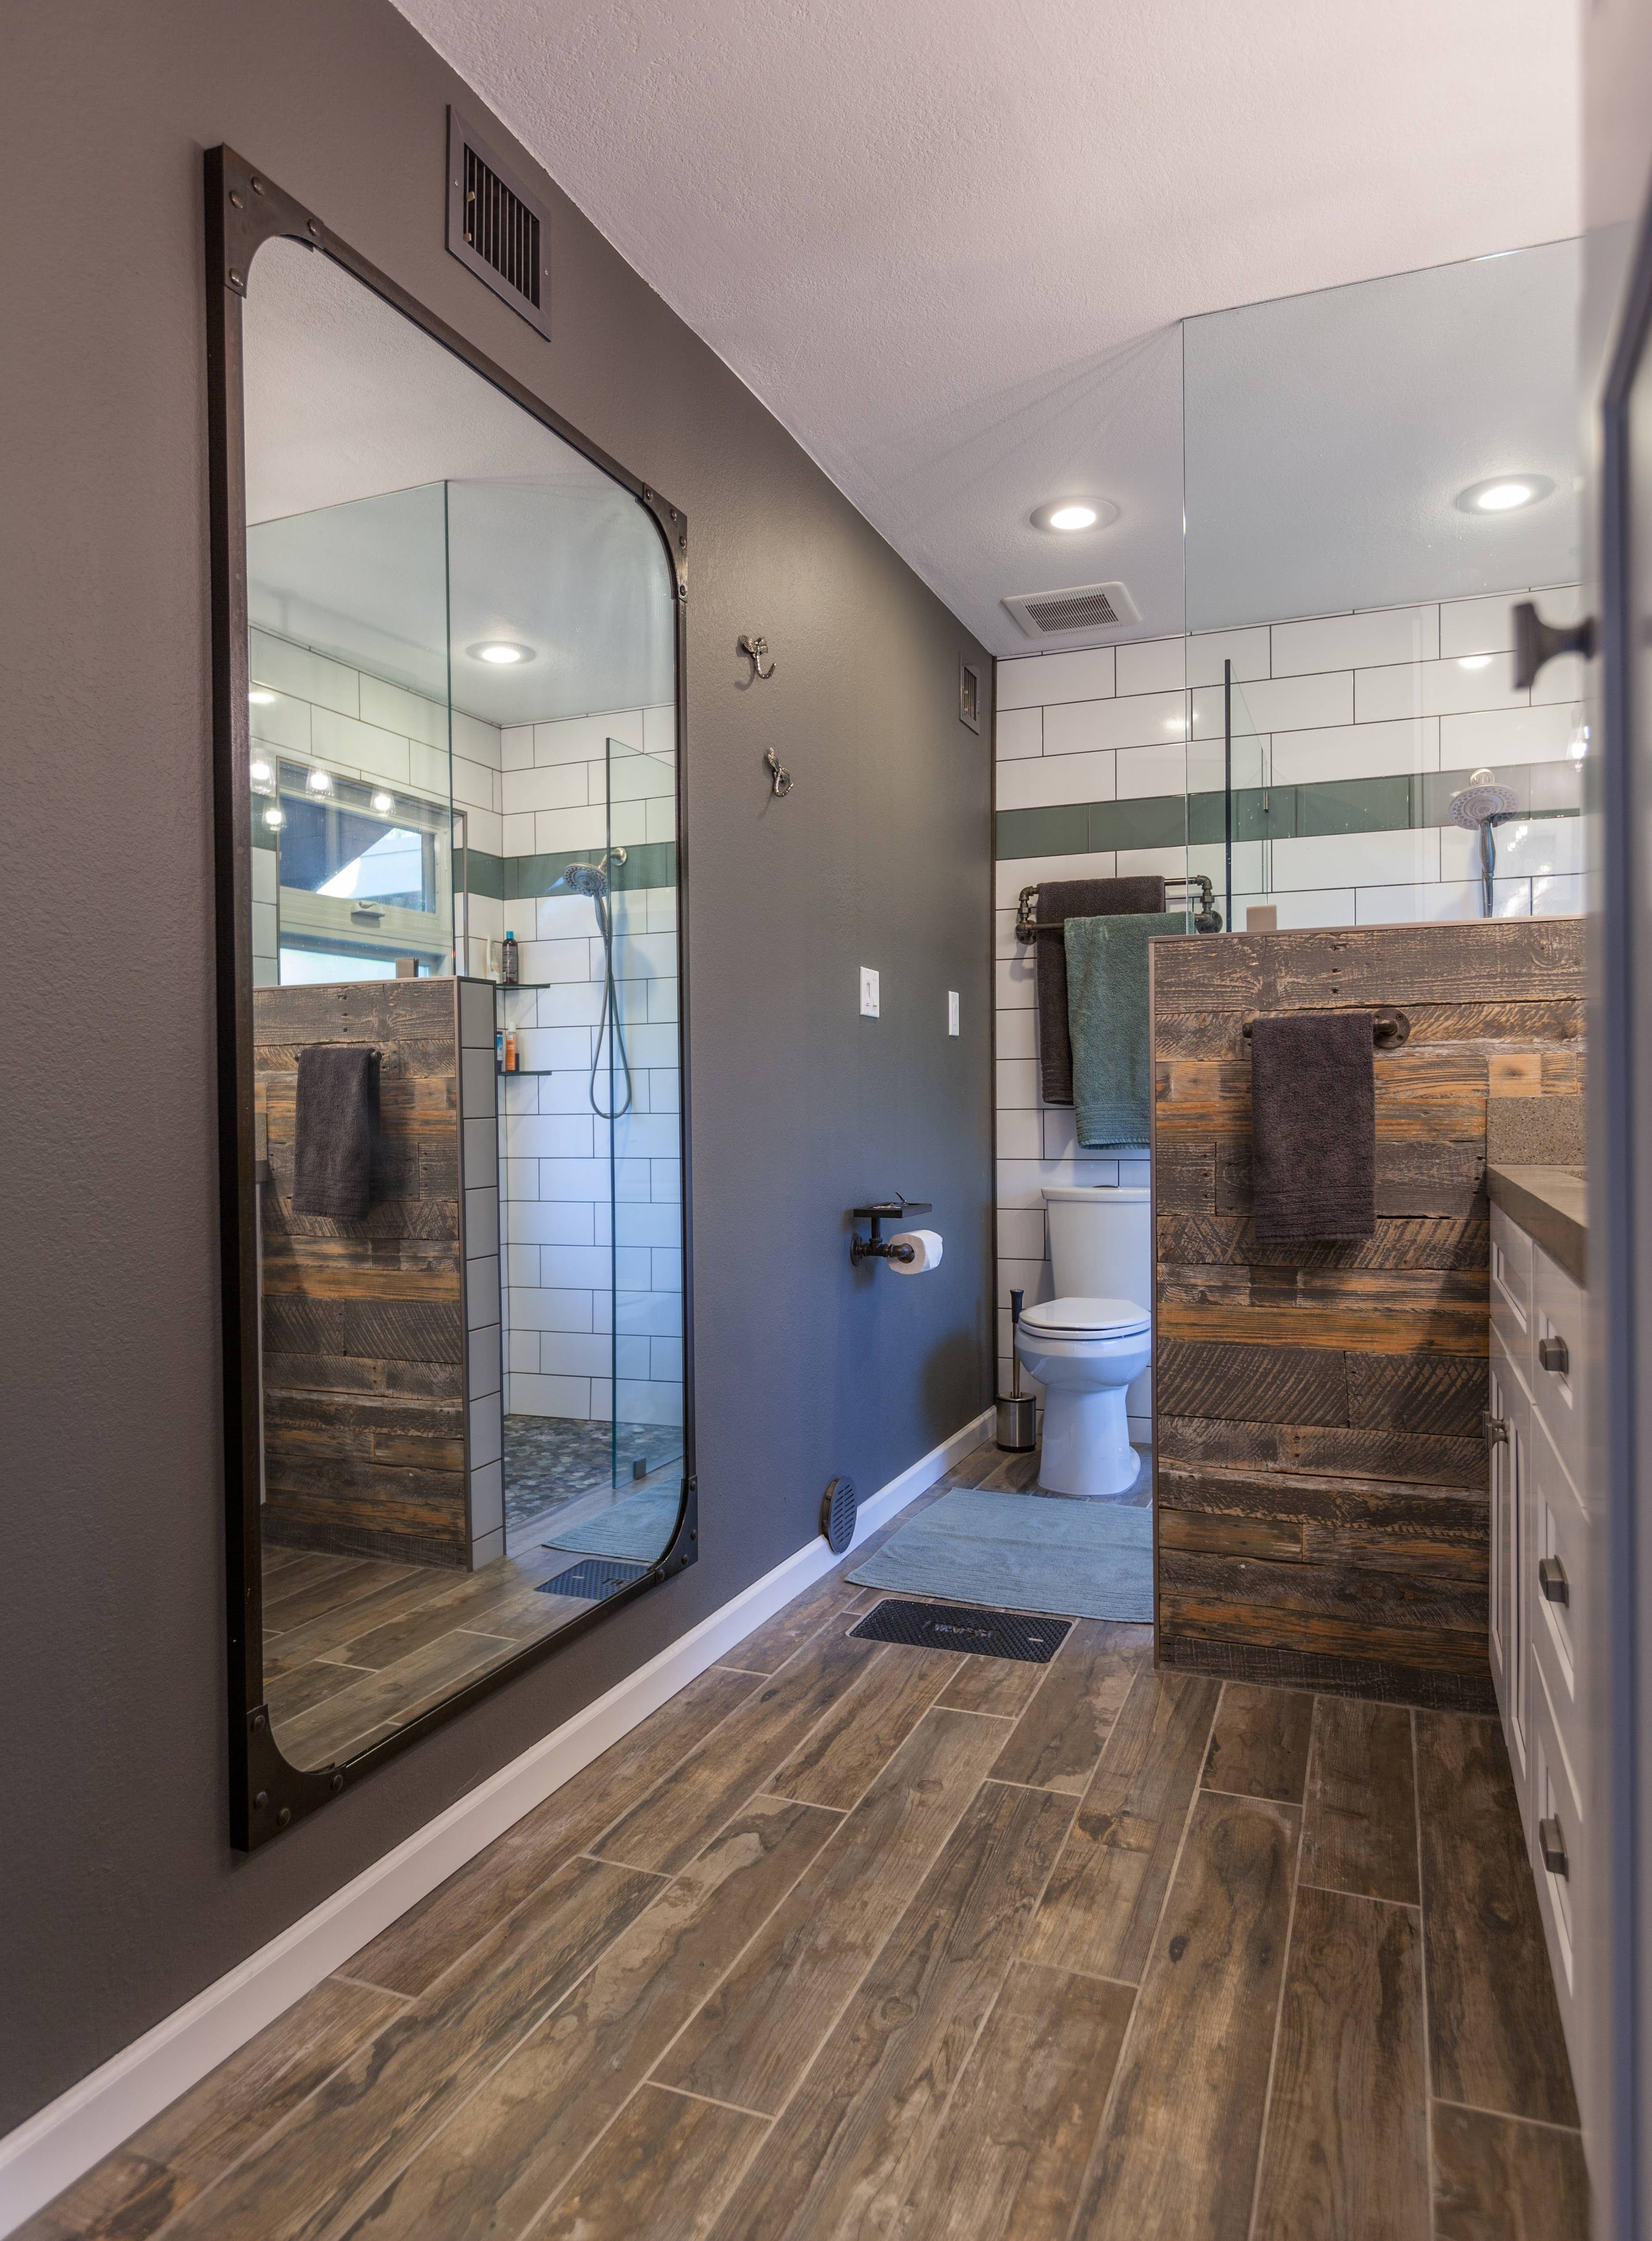 Love This Industrial Bathroom Remodel With Plenty Of Warm, Natural